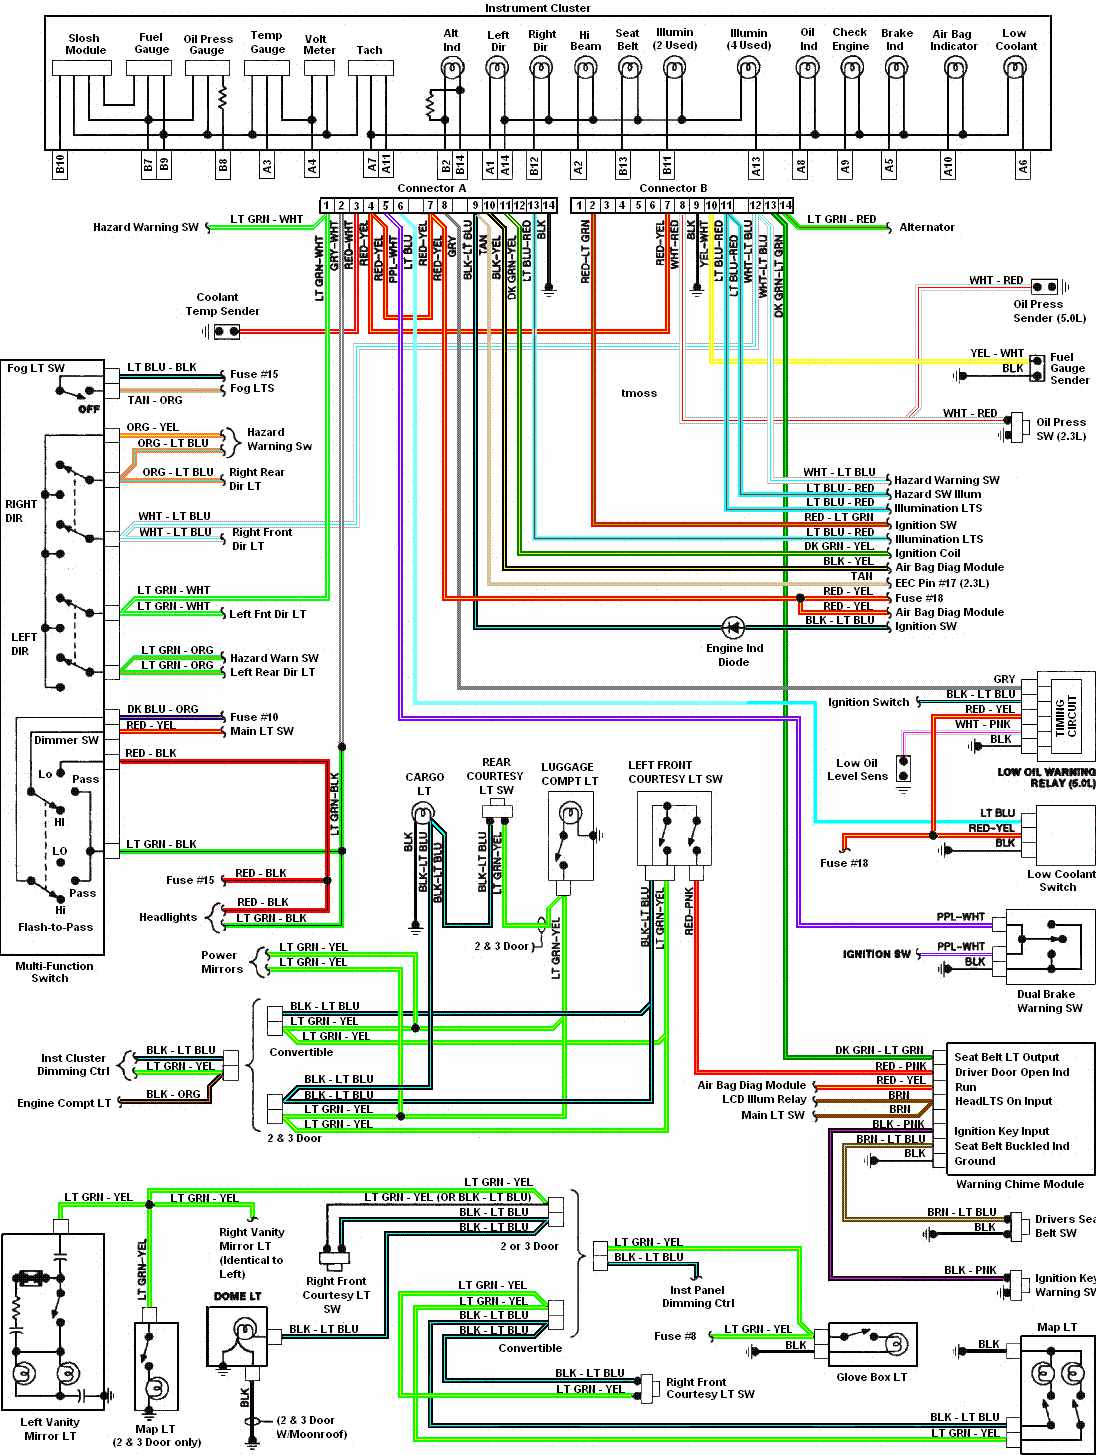 1967 camaro distributor wiring diagram with Instrument Cluster Wiring Diagrams Of on 1968 Camaro Gas Tank Wiring Diagram further 1966 Chevy Chevelle Turn Signal Wiring Diagram as well 1967 Camaro Fuel Gauge Diagram also Showthread moreover 1988 Chevrolet Chevy C1500 Wiring.